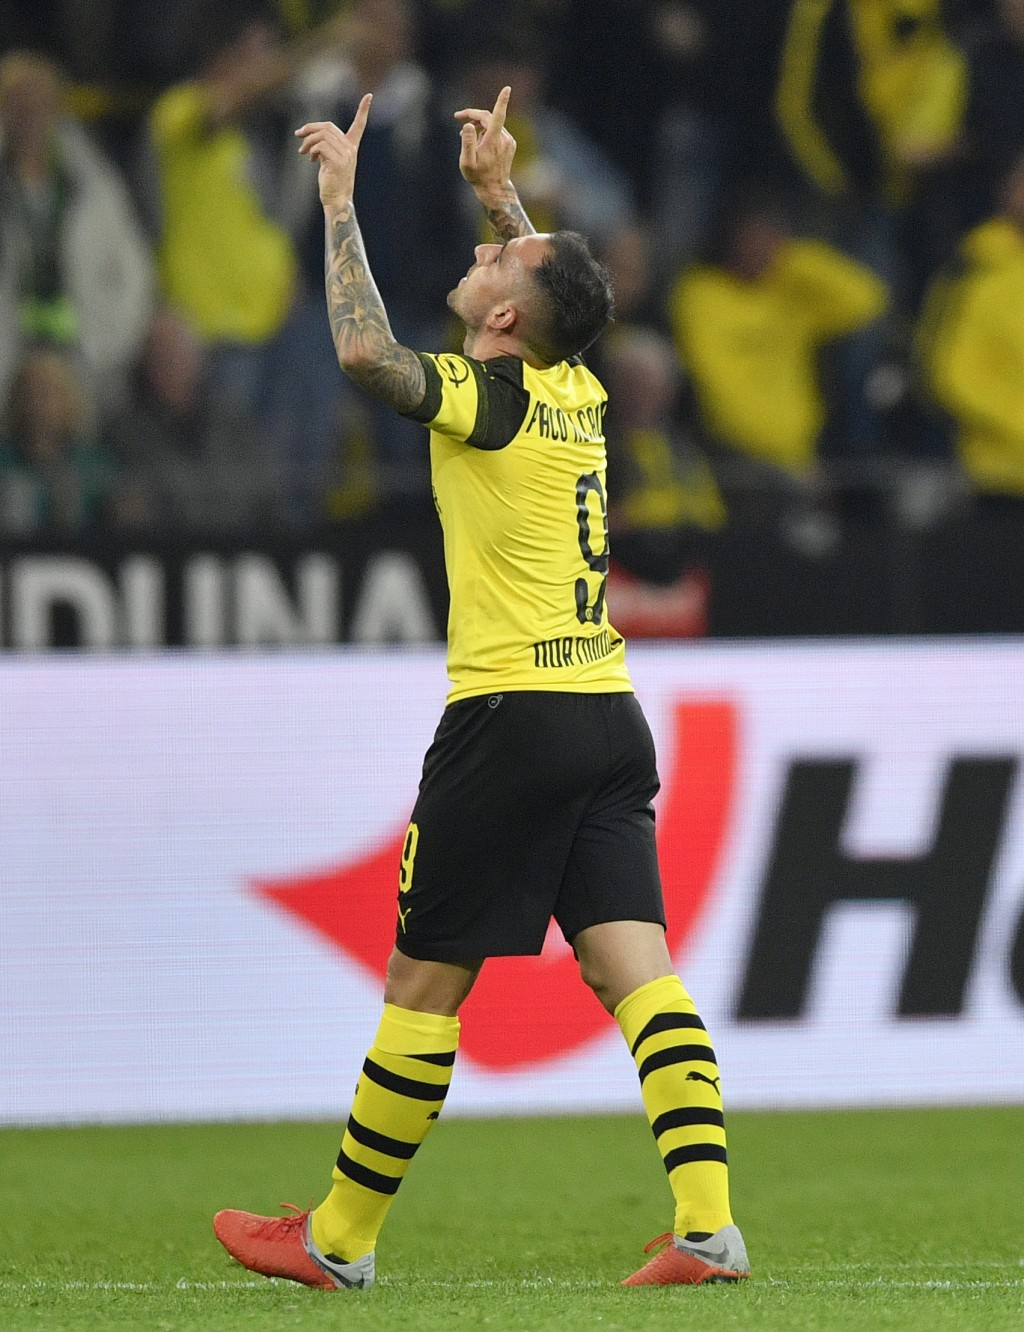 Dortmund's new forward Paco Alcacer celebrates after scoring his side's third goal at his debut during the German Bundesliga soccer match between Boru...